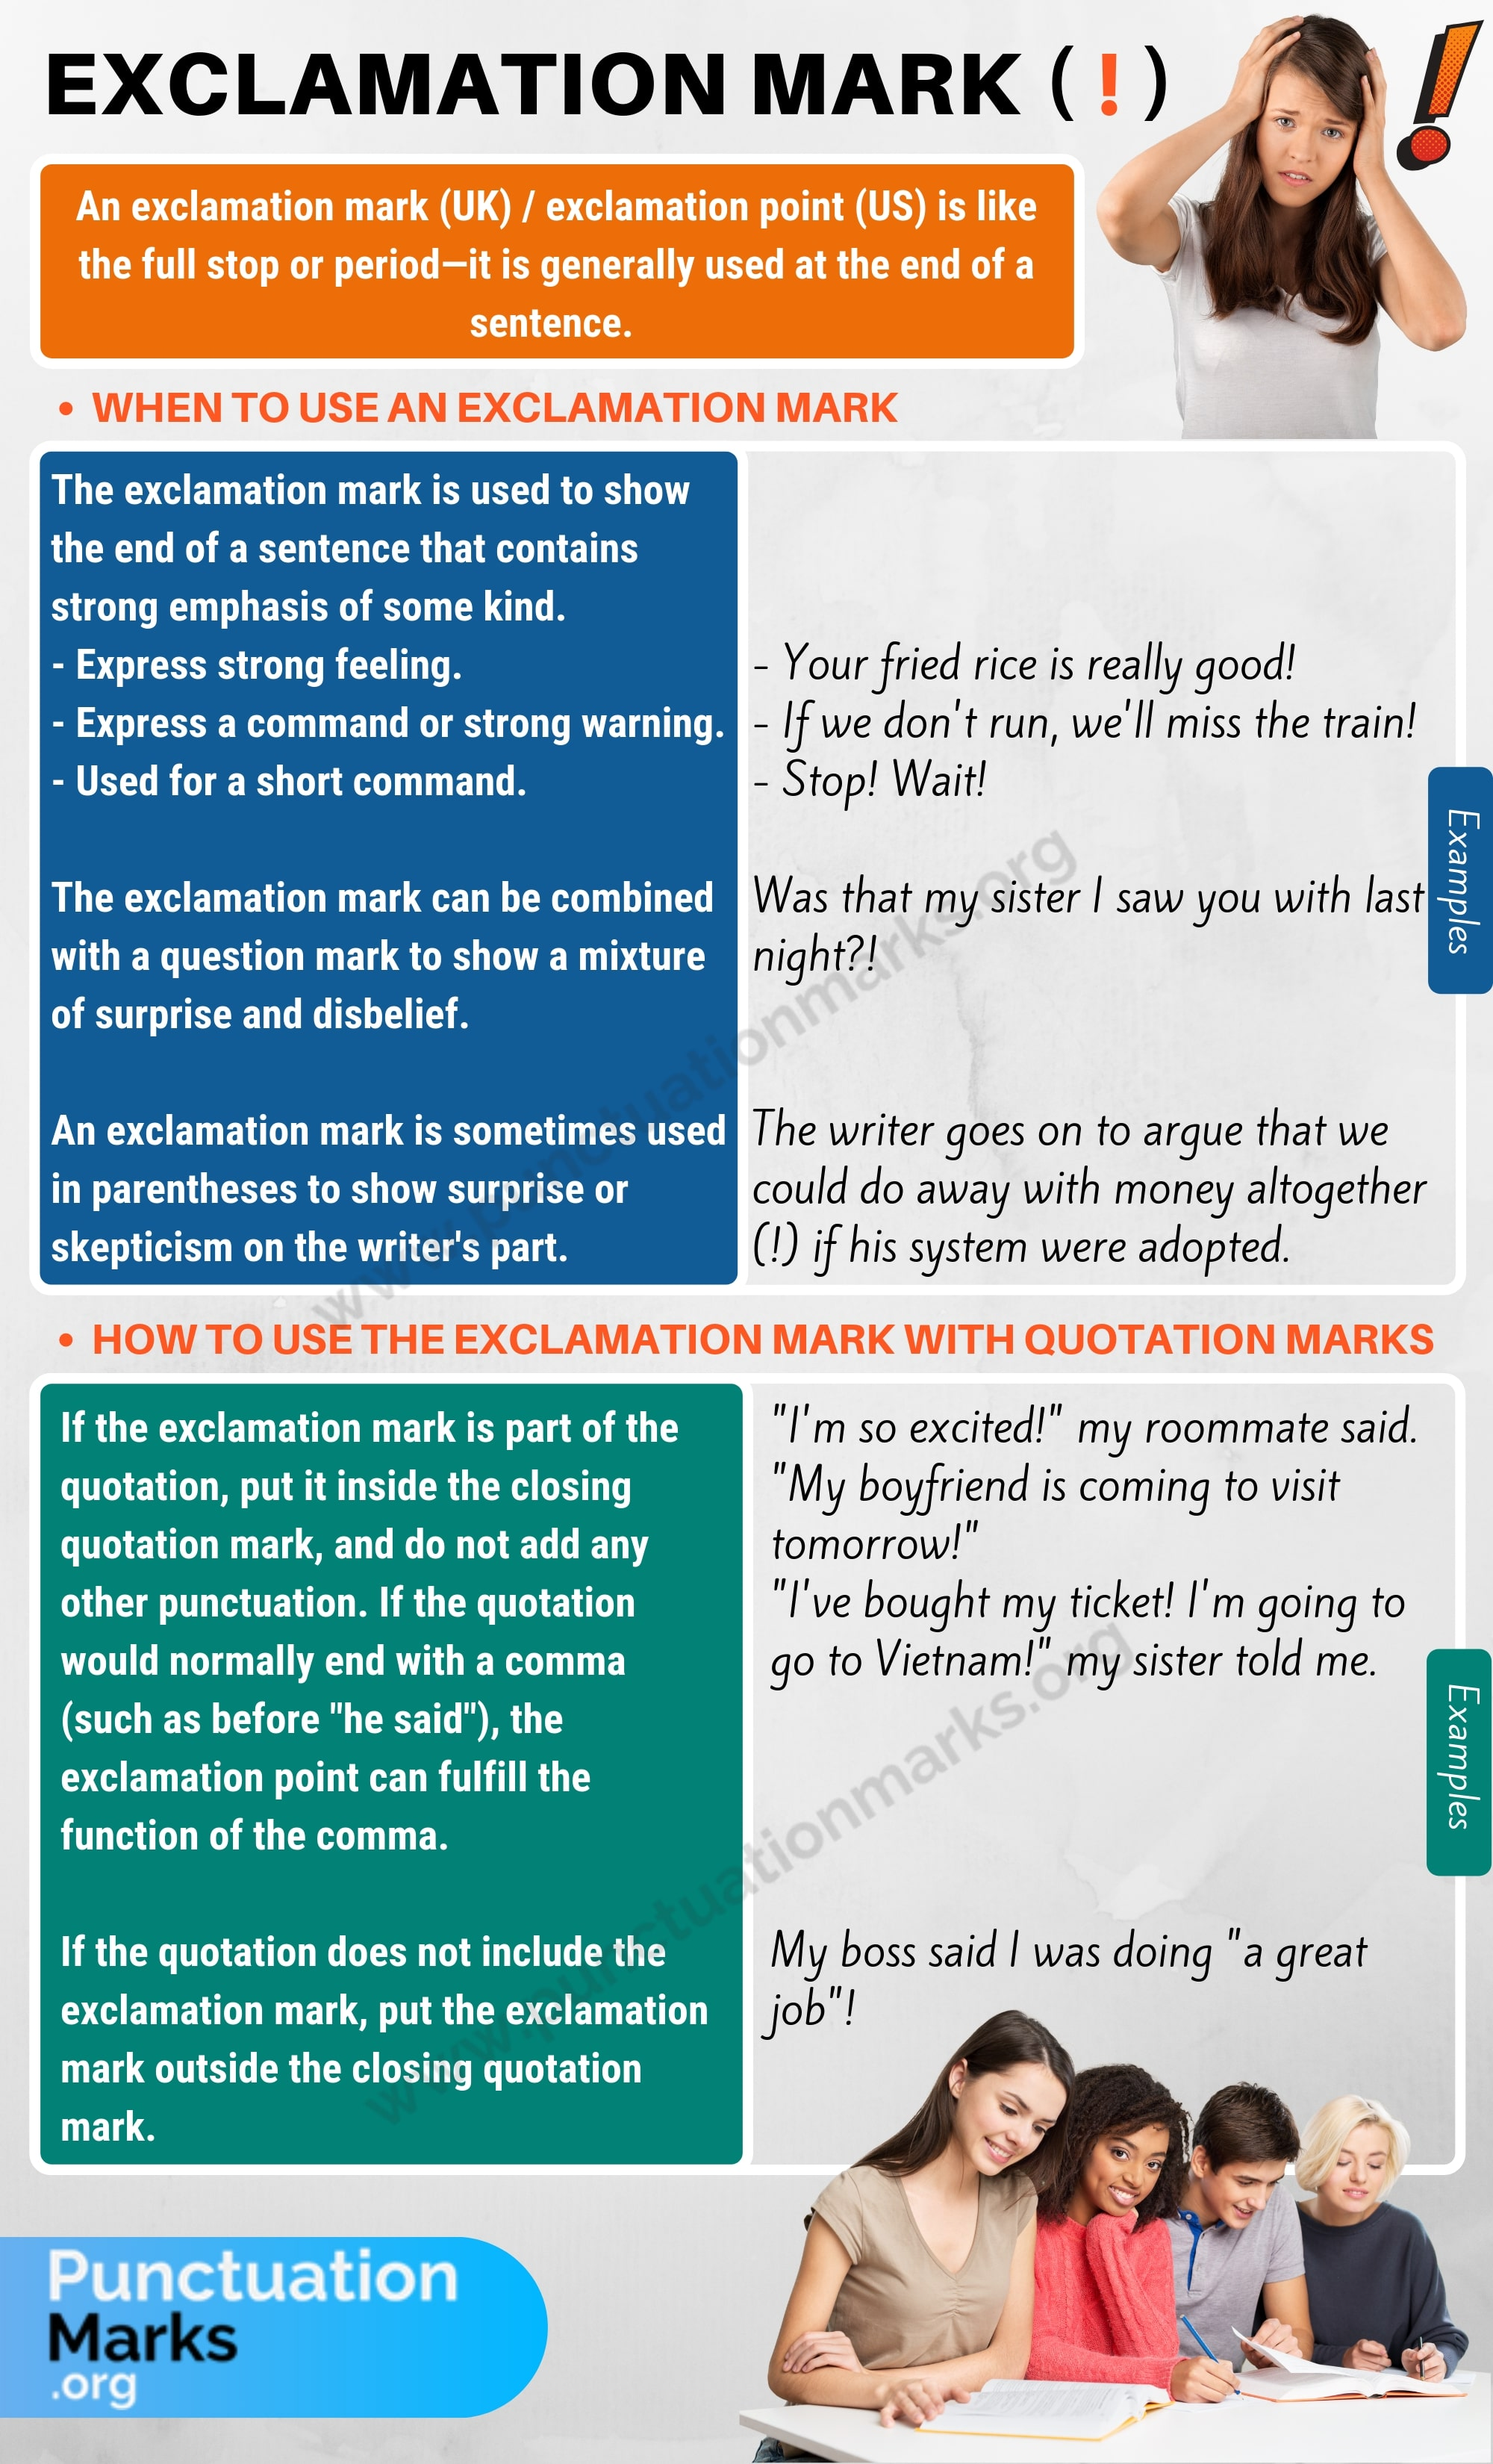 Exclamation Mark/ Exclamation Point (!) Rules & Examples